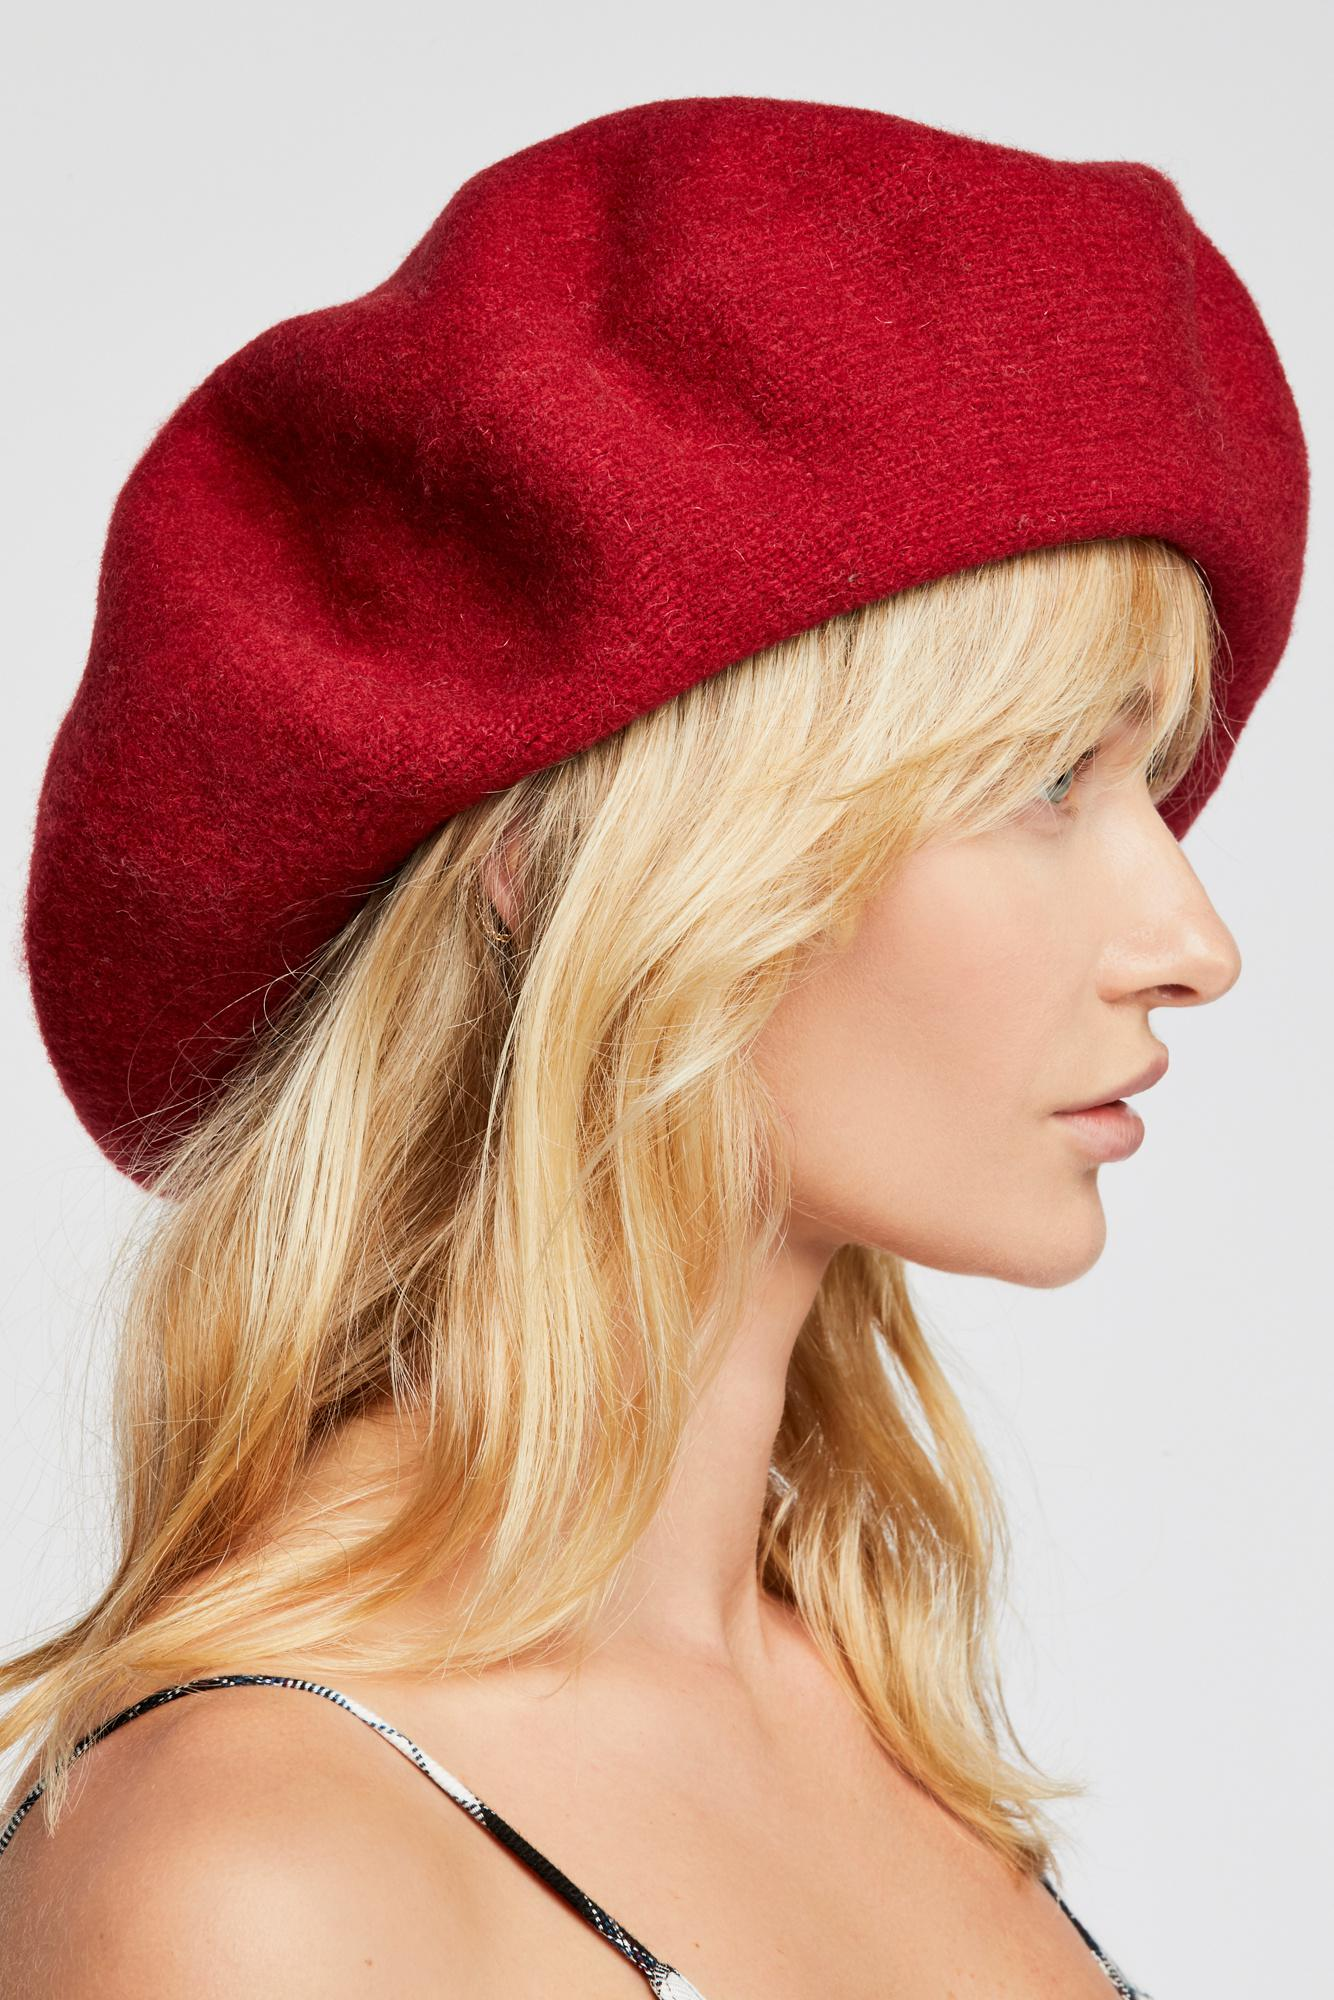 Lyst - Free People Margot Slouchy Beret in Red 4fae33b2b2a